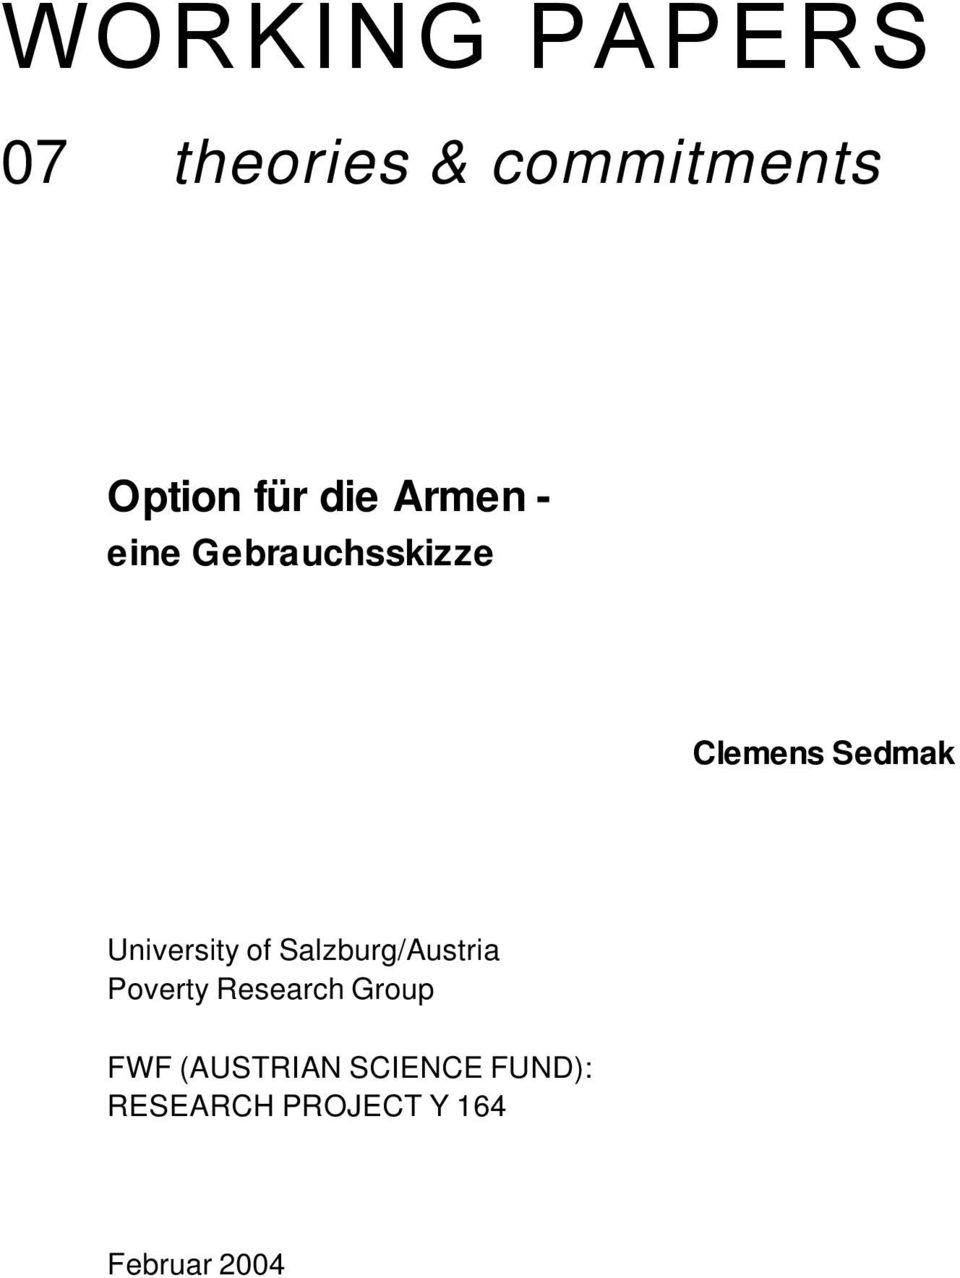 University of Salzburg/Austria Poverty Research Group